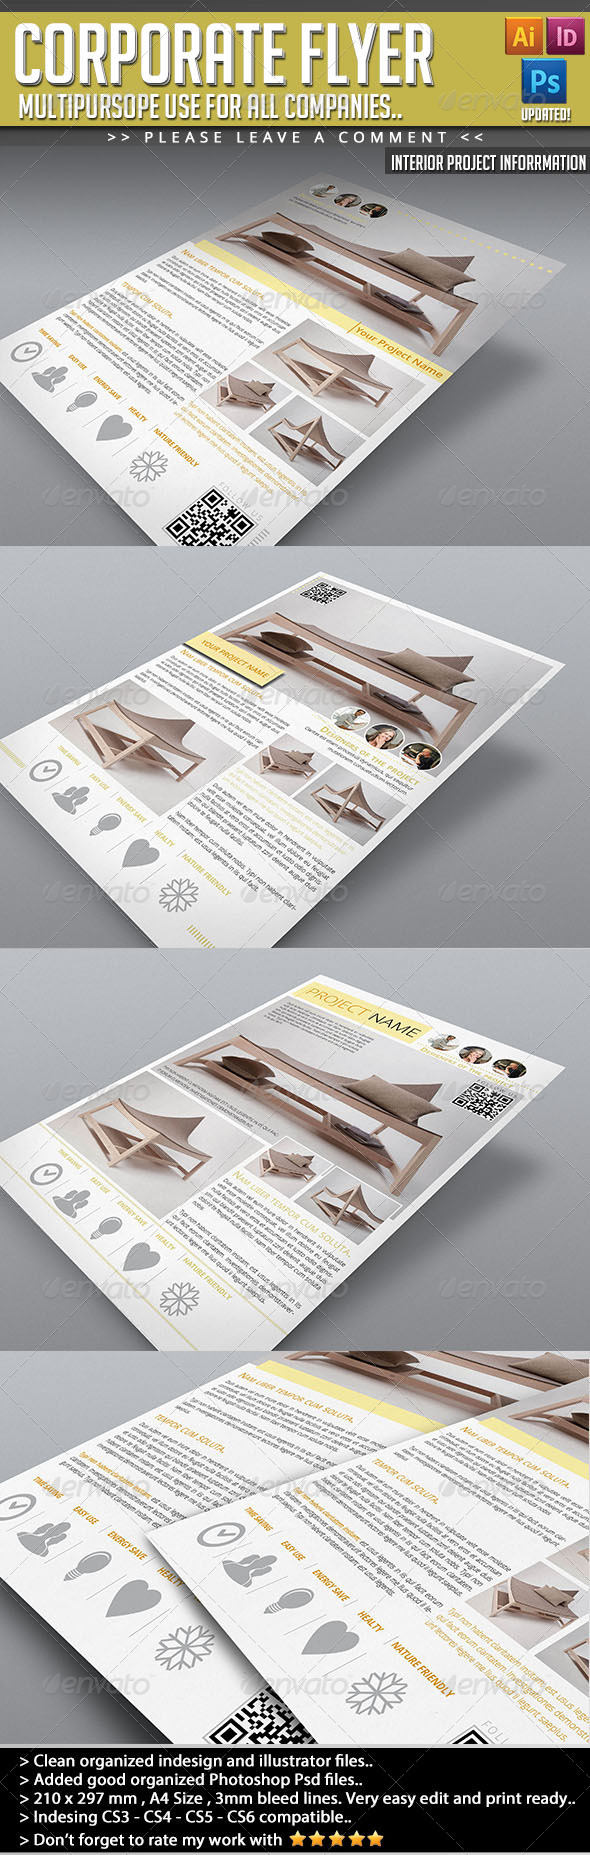 Corporate Flyer - Interior Project Information - Corporate Flyers